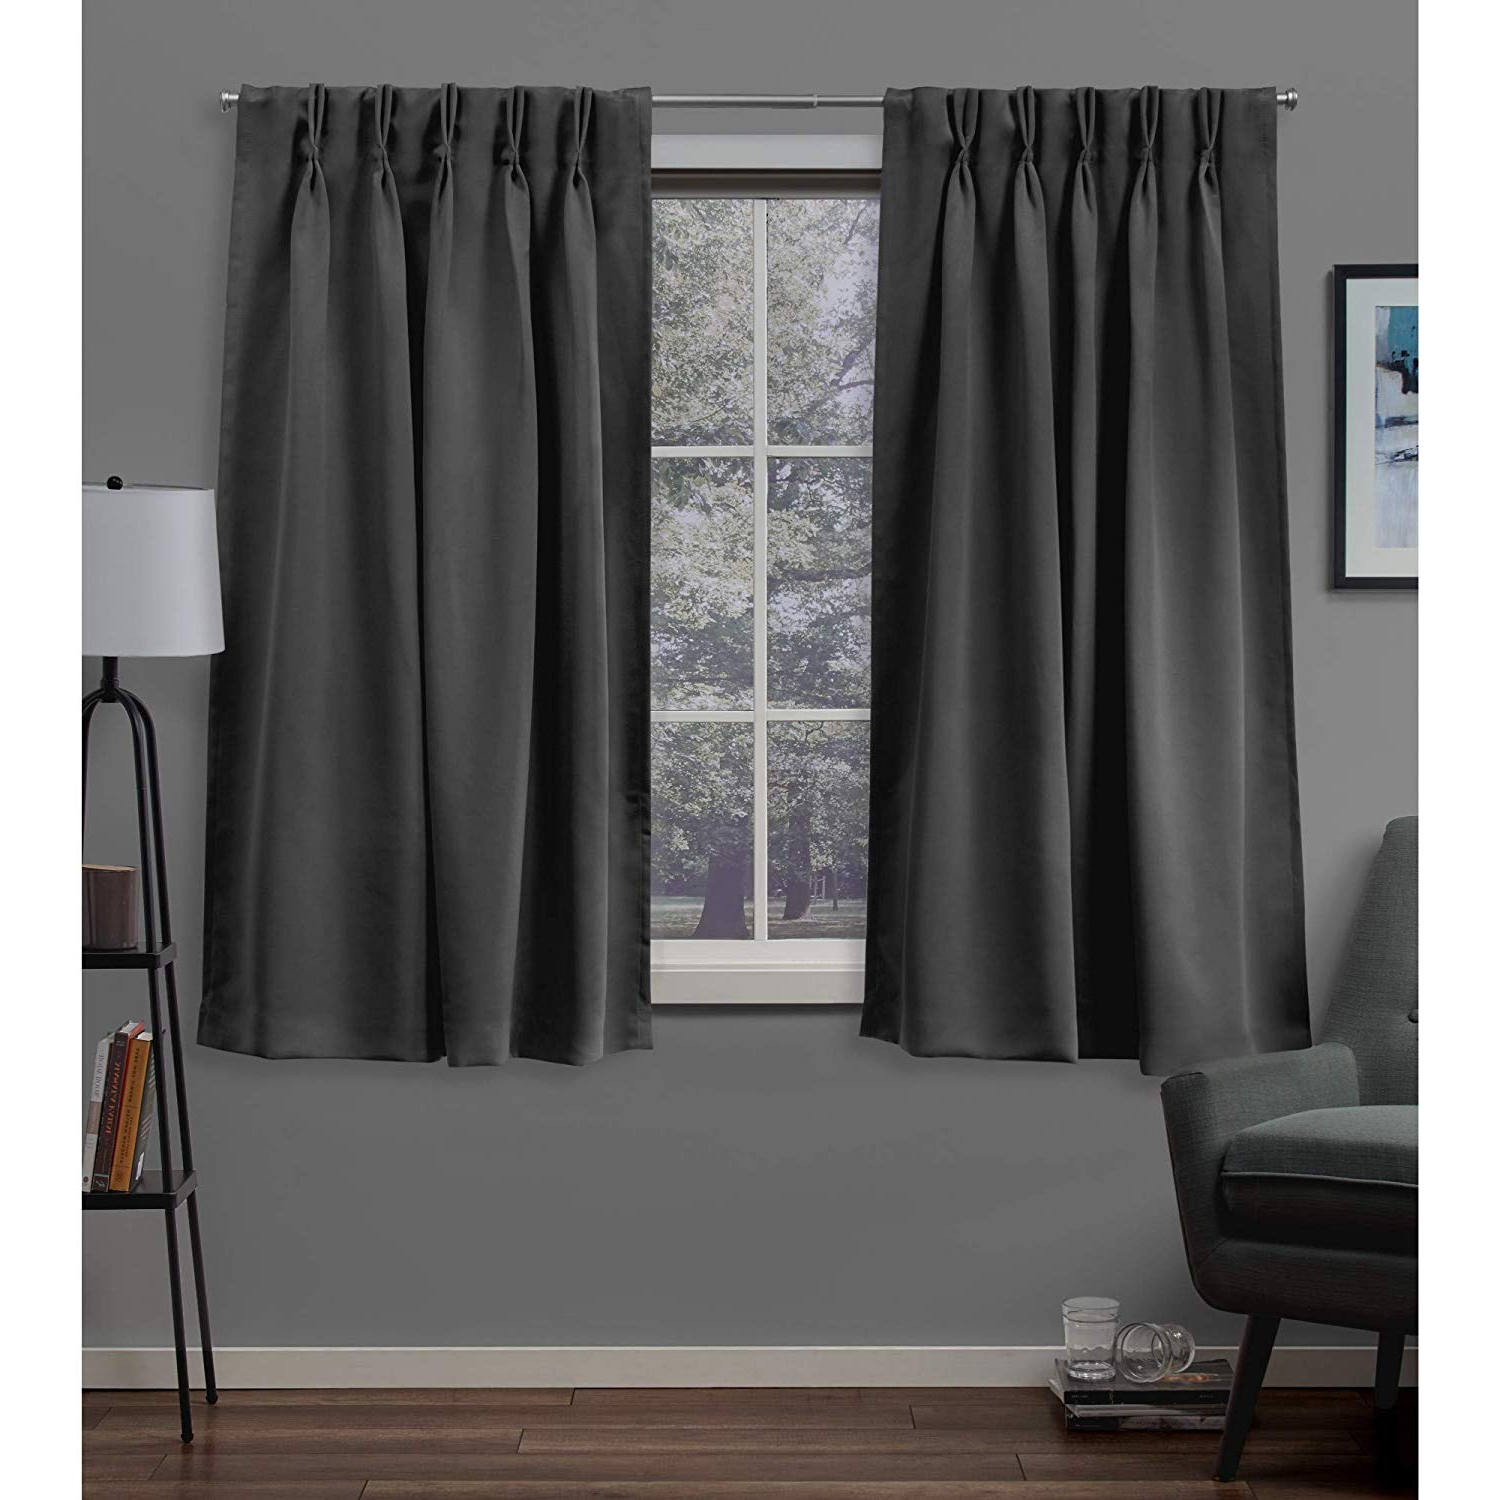 Double Pinch Pleat Top Curtain Panel Pairs With Regard To Well Liked Exclusive Home Sateen Twill Woven Blackout Pinch Pleat Curtain Panel Pair,  Charcoal (View 11 of 20)